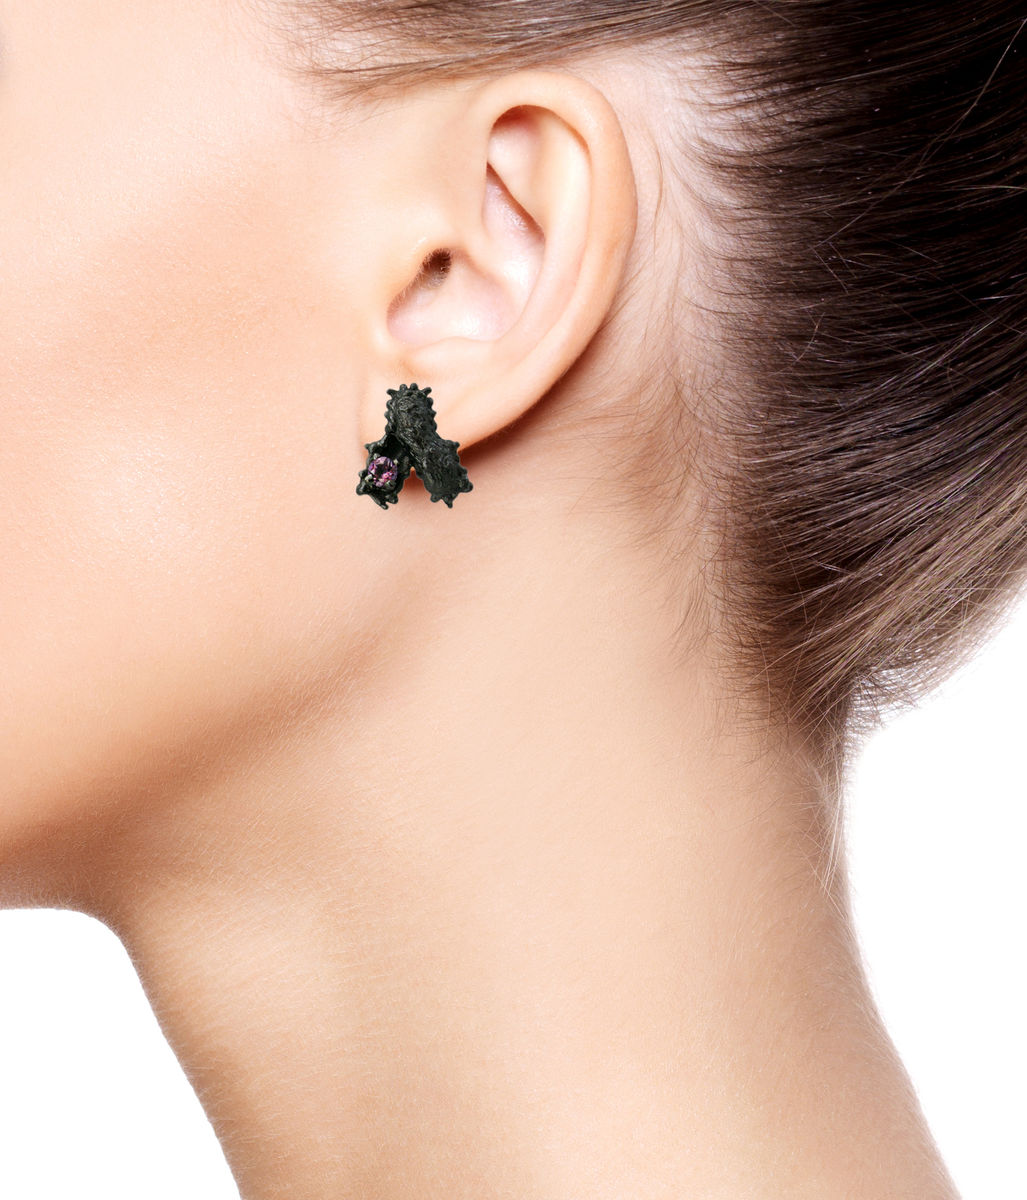 Caterpillar double earrings with stone (different colors) - product images  of